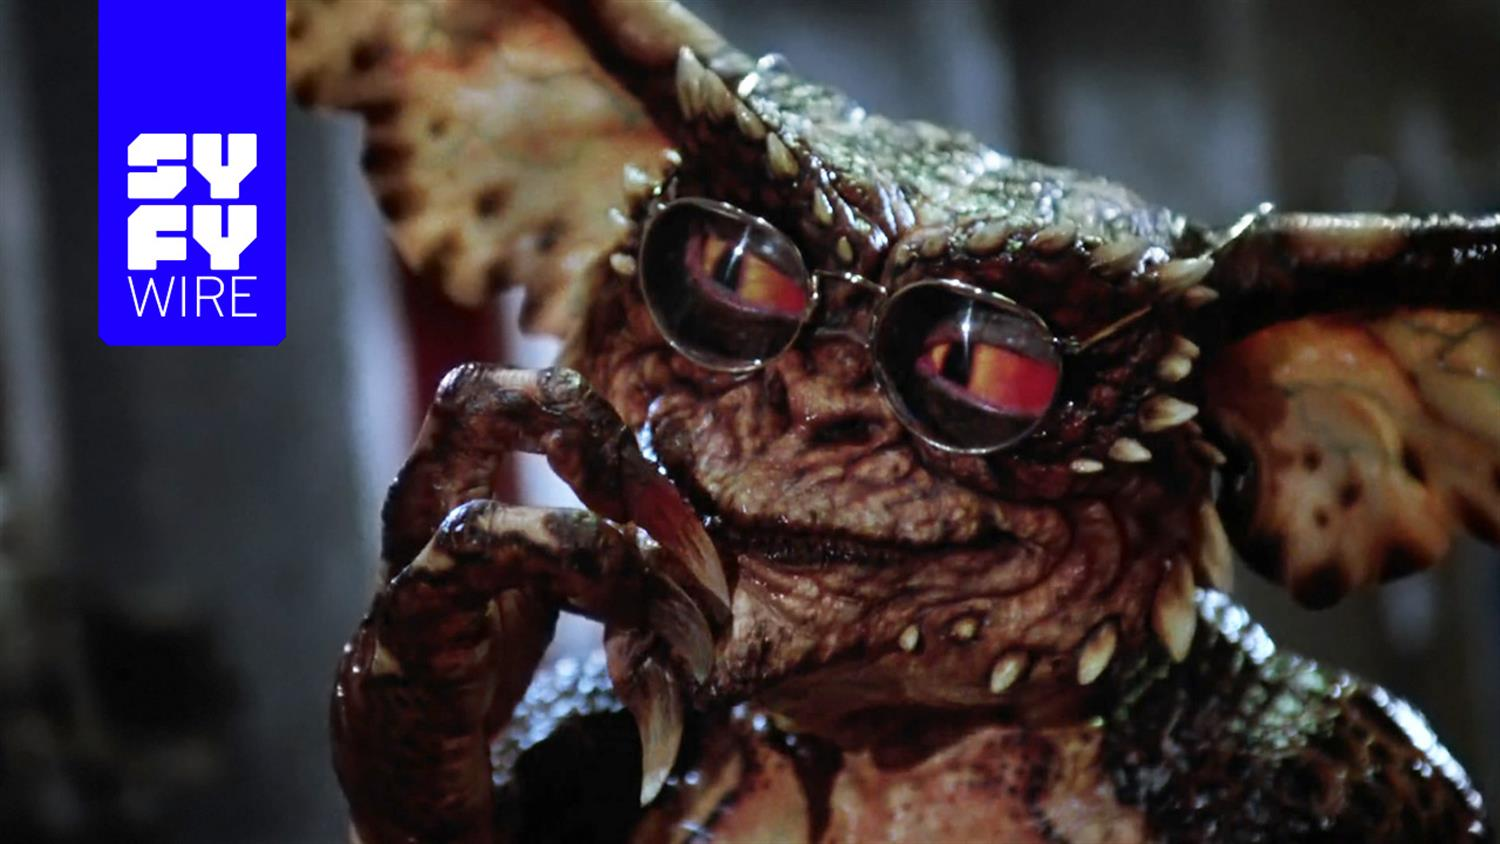 Gremlins 2 Actually Takes Place In A Post-Apocalyptic Universe (Fan Theory)